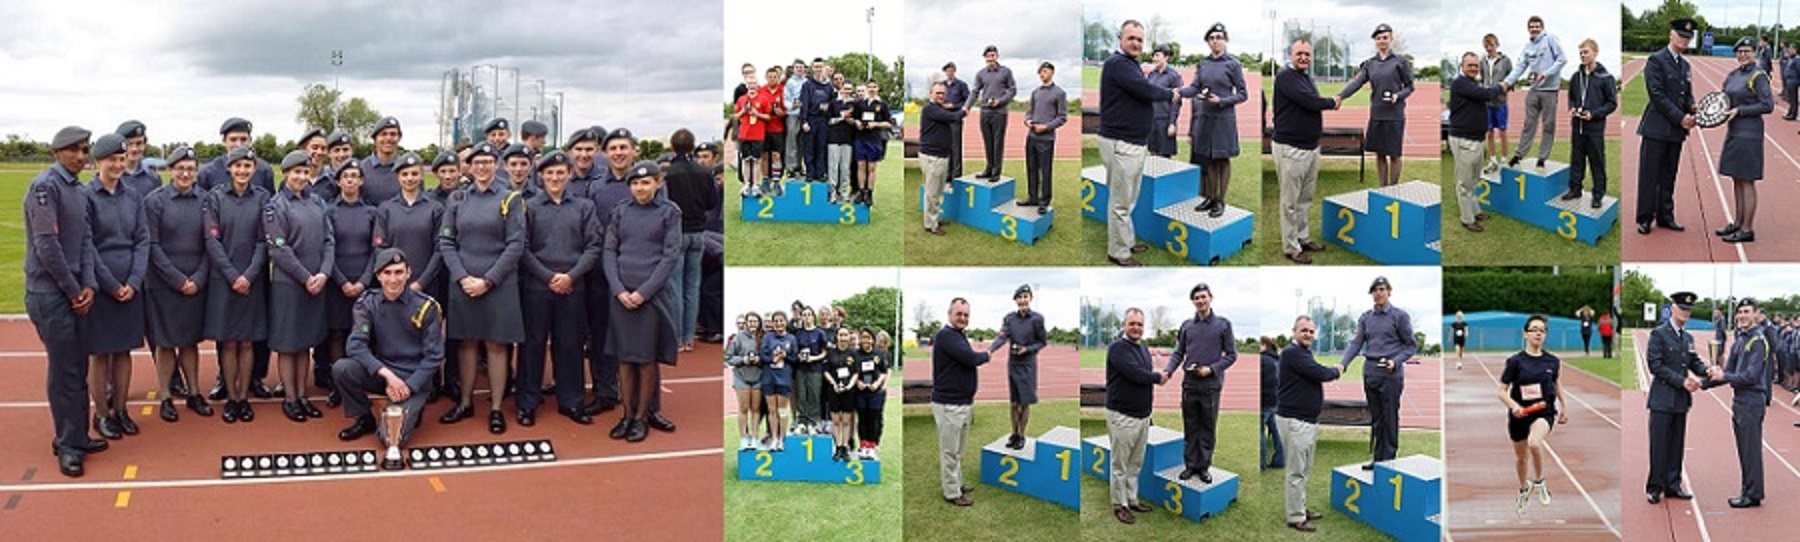 athletics2014